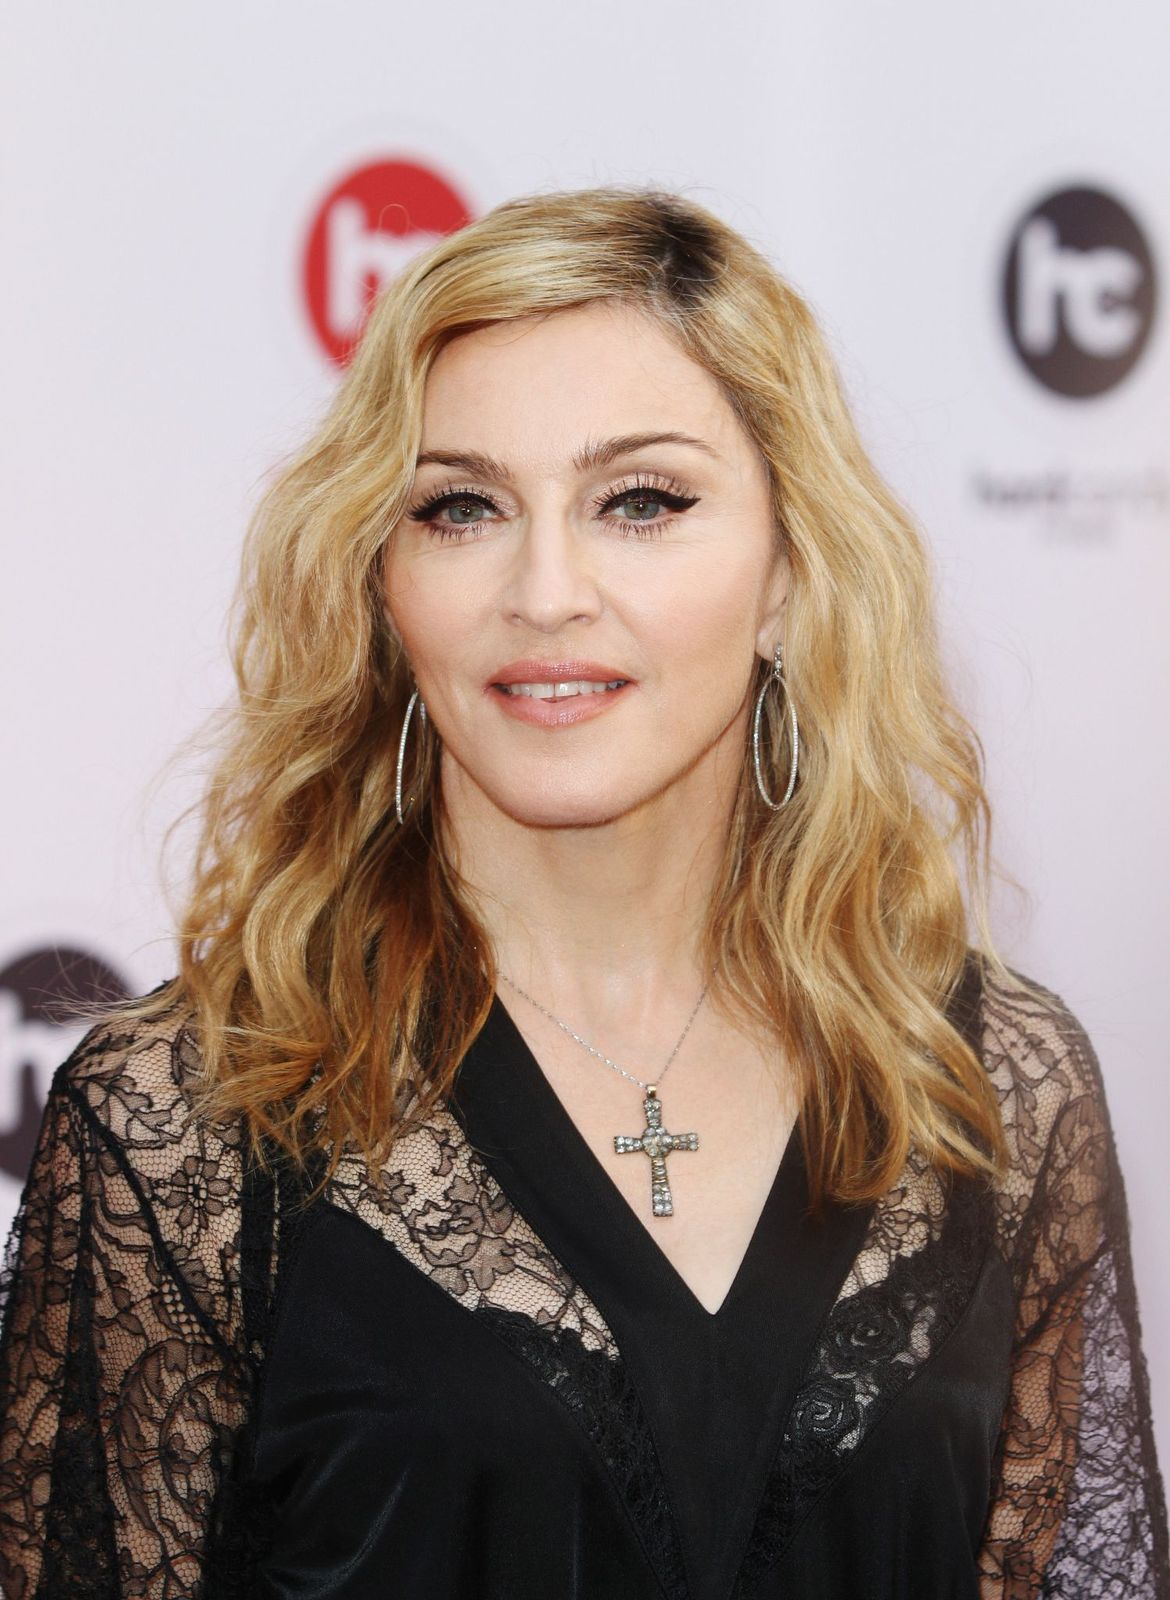 Madonna at the Hard Candy Fitness - Moscow at the Madonna 2012 World Tour on August 6, 2012 | Photo: Getty Images